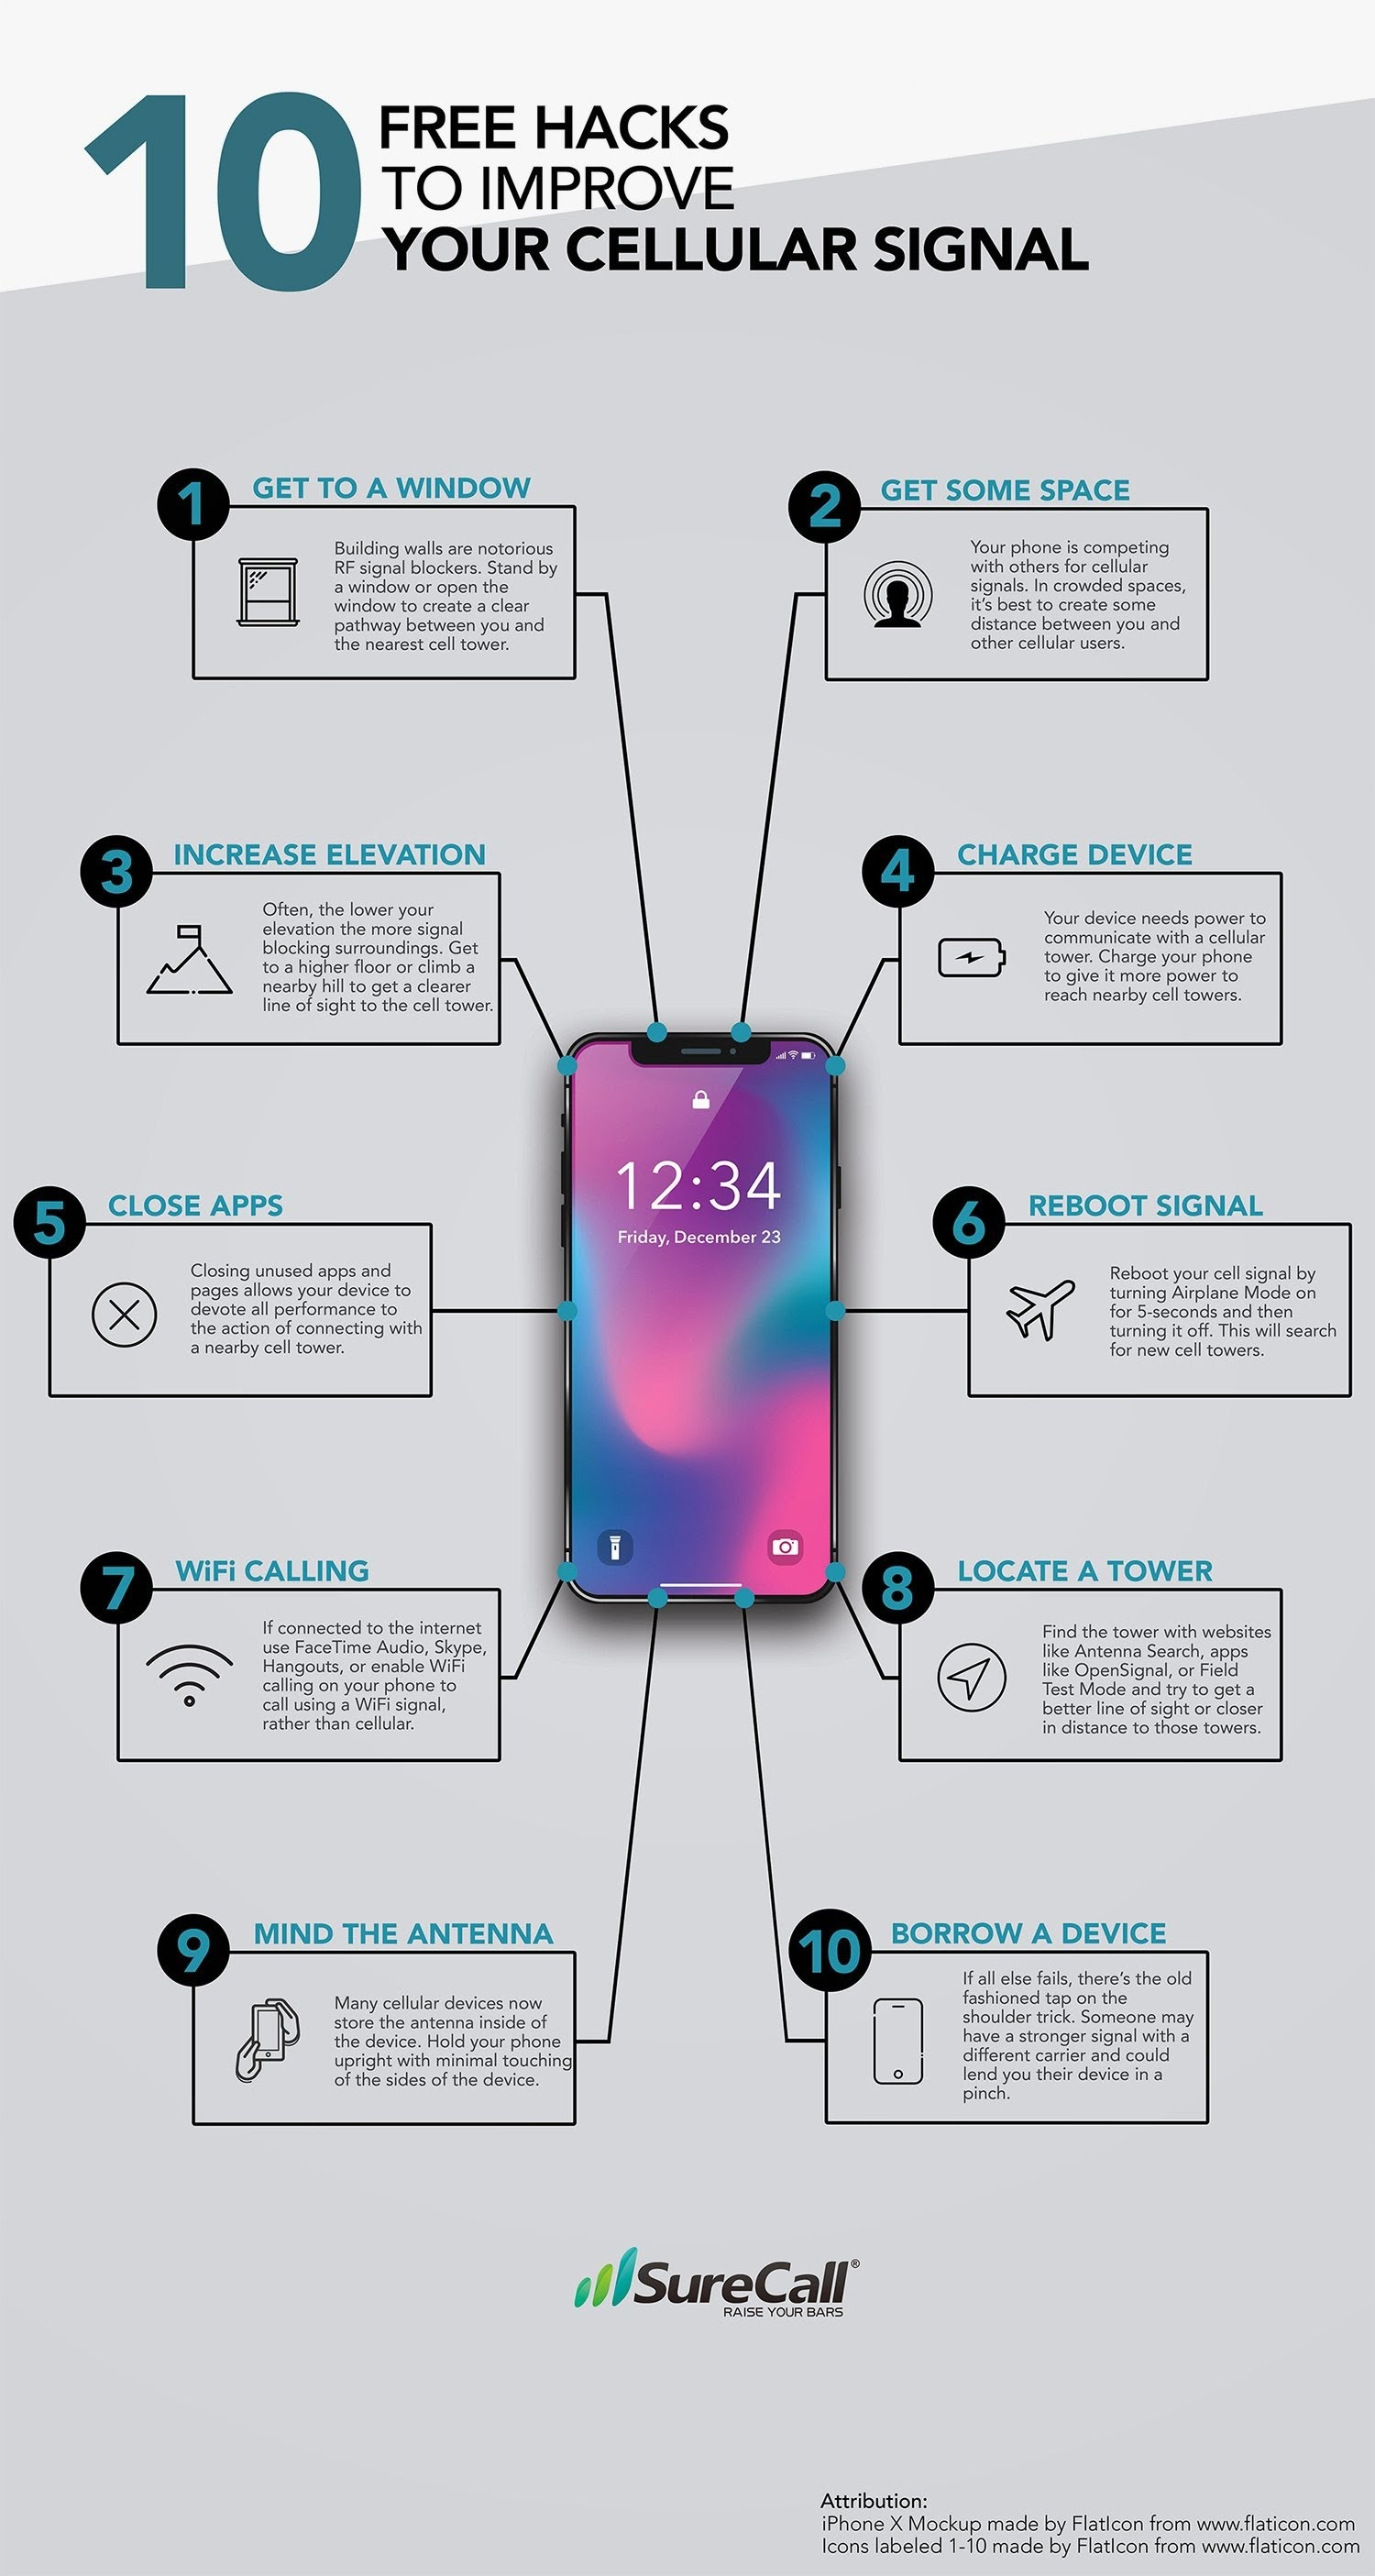 10 Free Hacks for Improving Your Cell Signal - #infographic